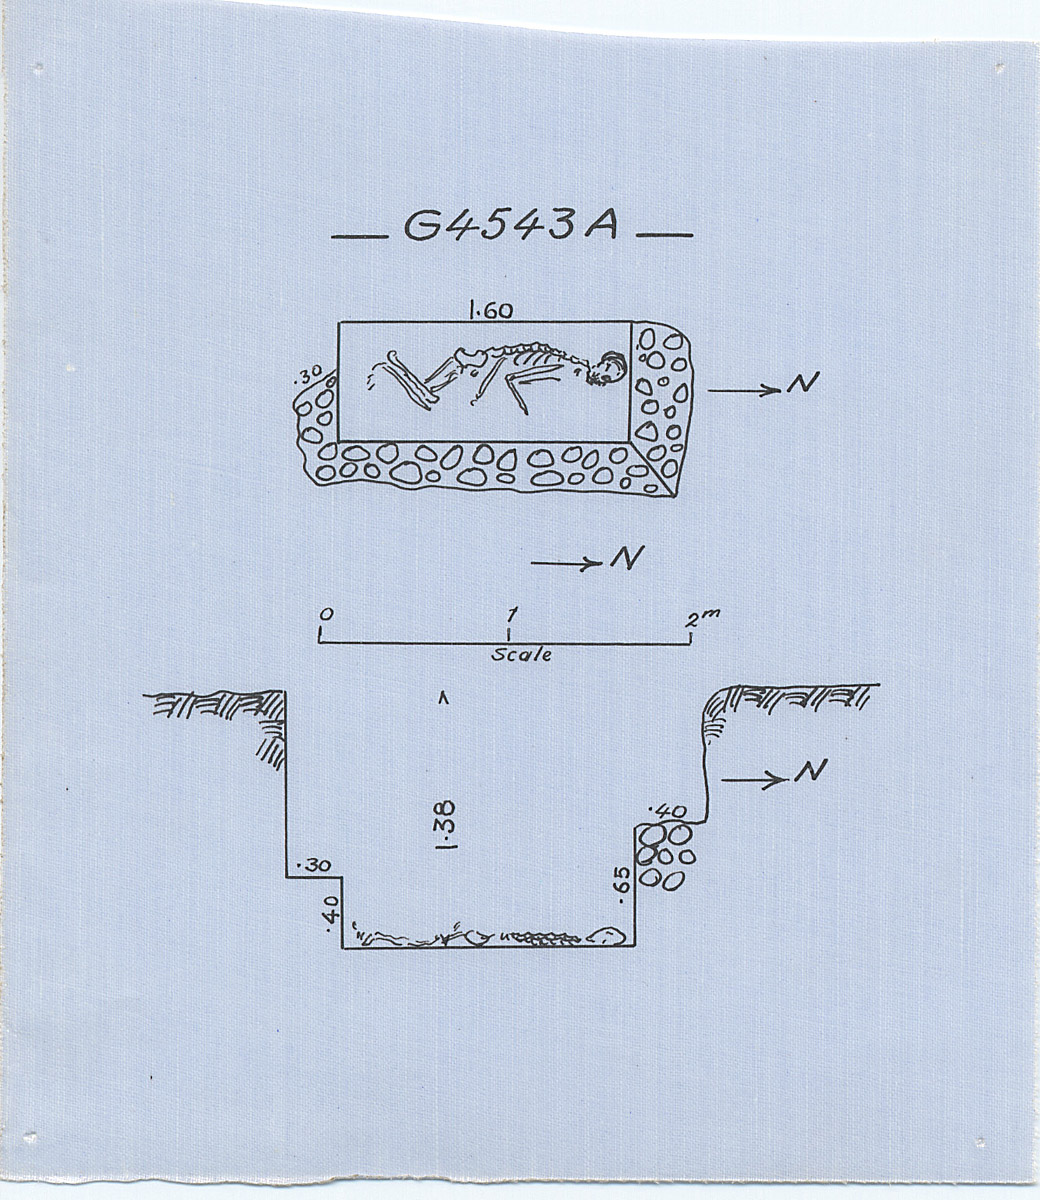 Maps and plans: G 4543, Shaft A